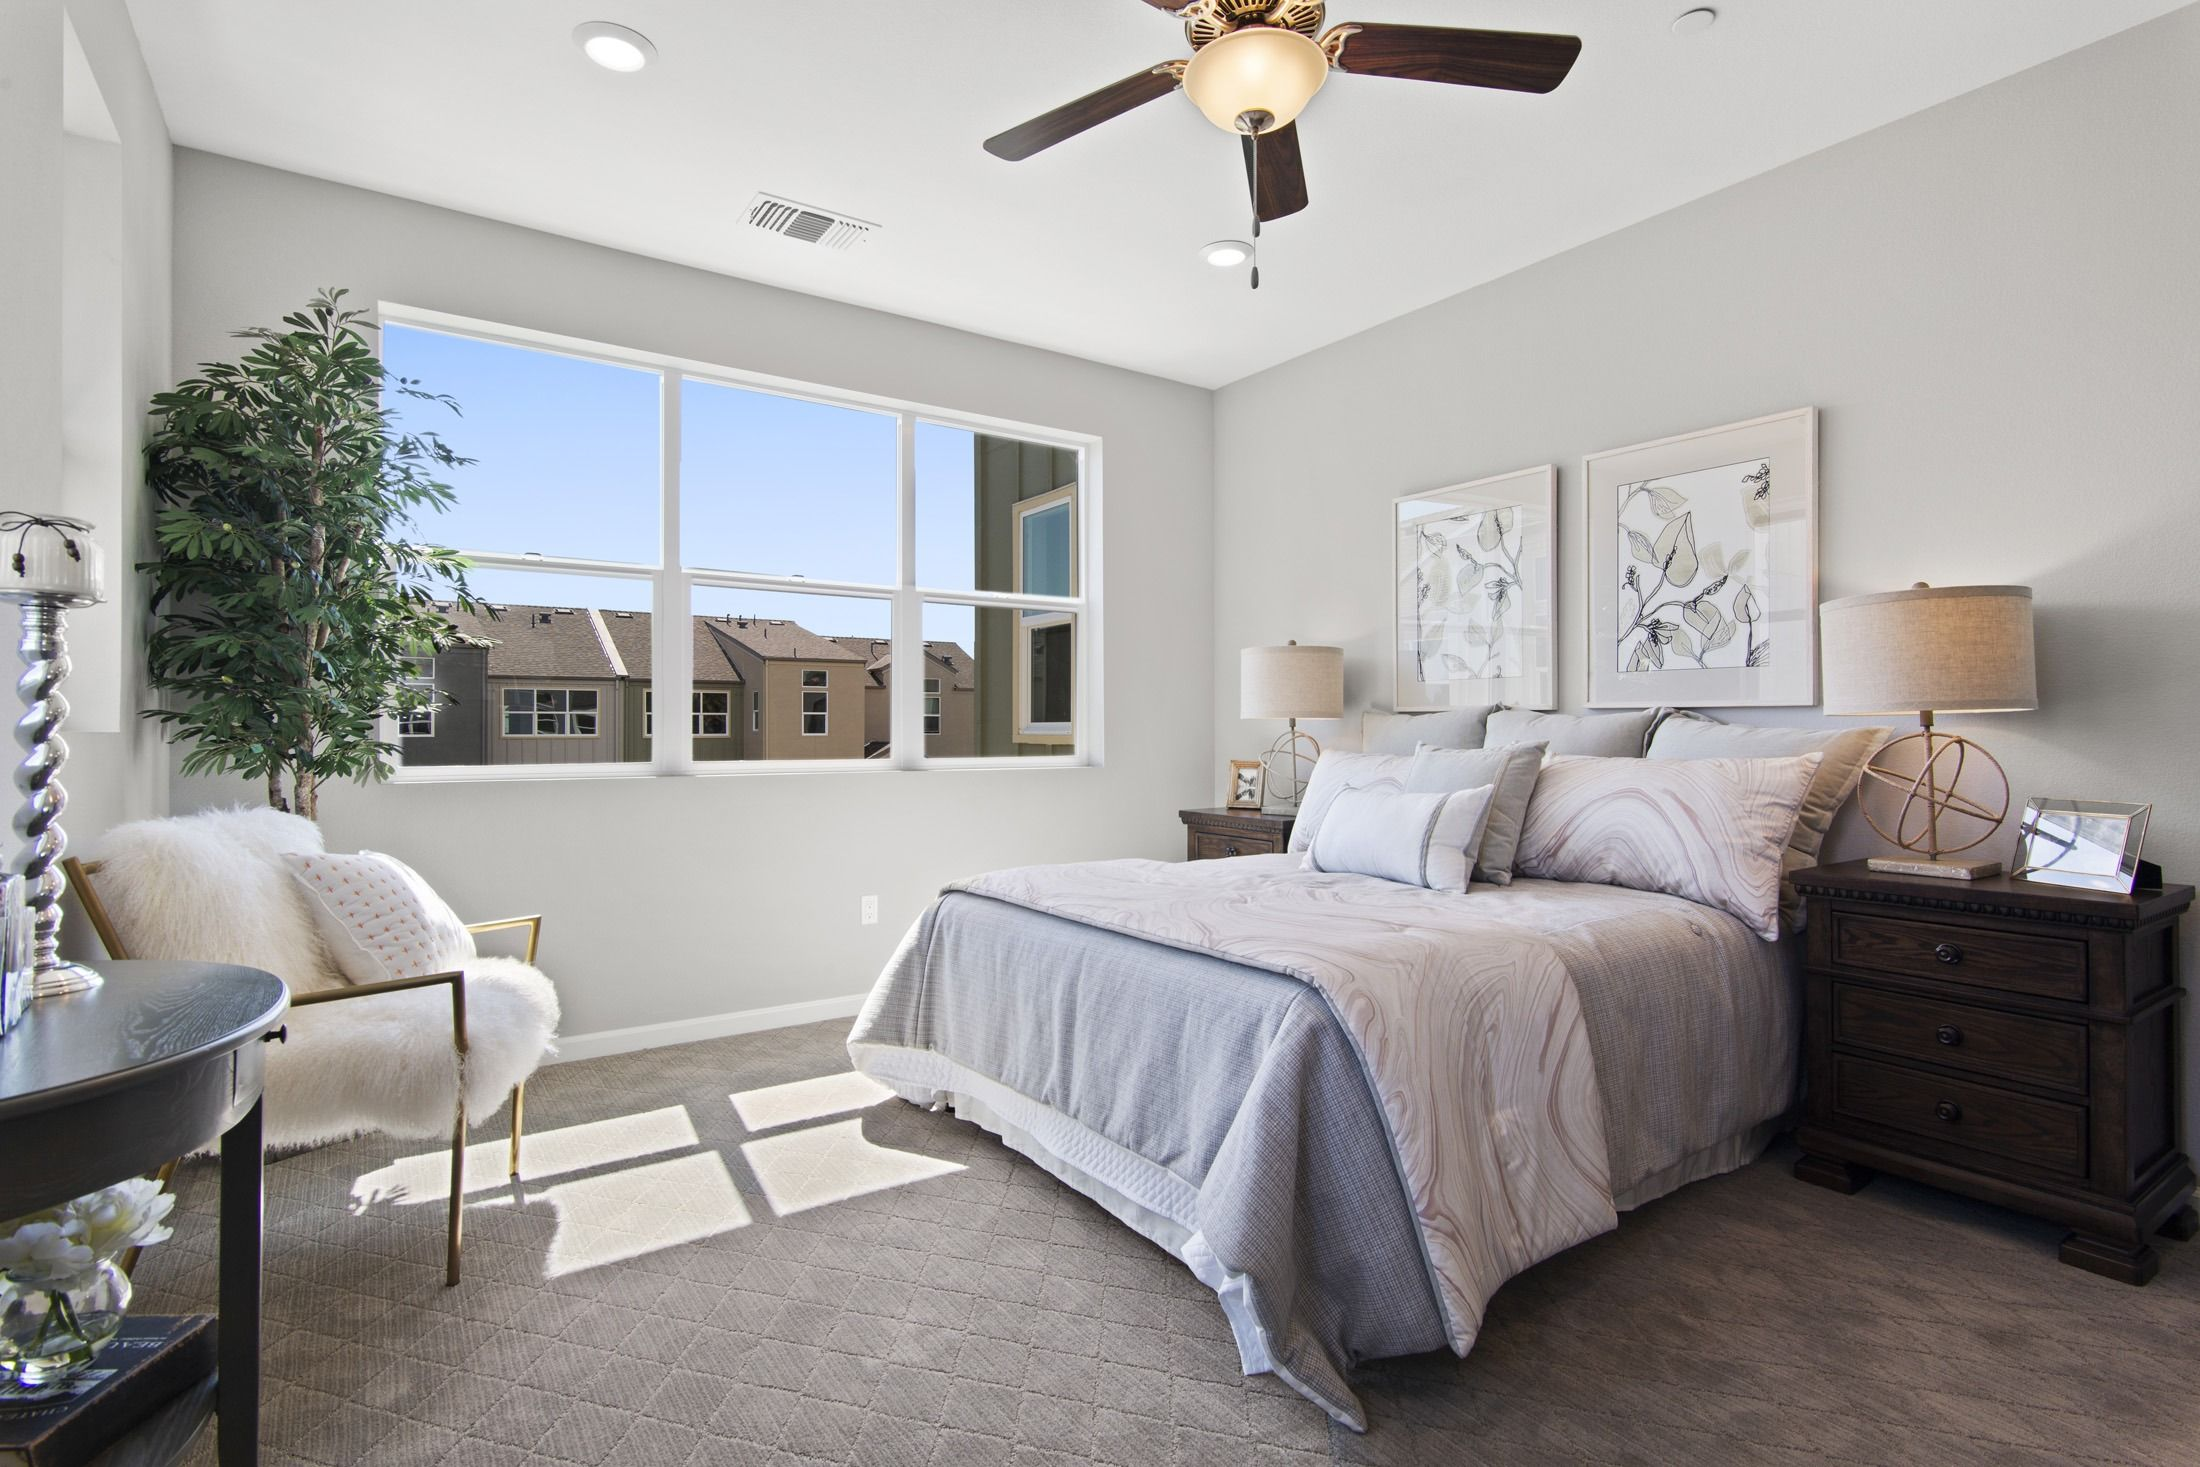 Bedroom featured in the Plan D By Blue Mountain Communities in Santa Rosa, CA